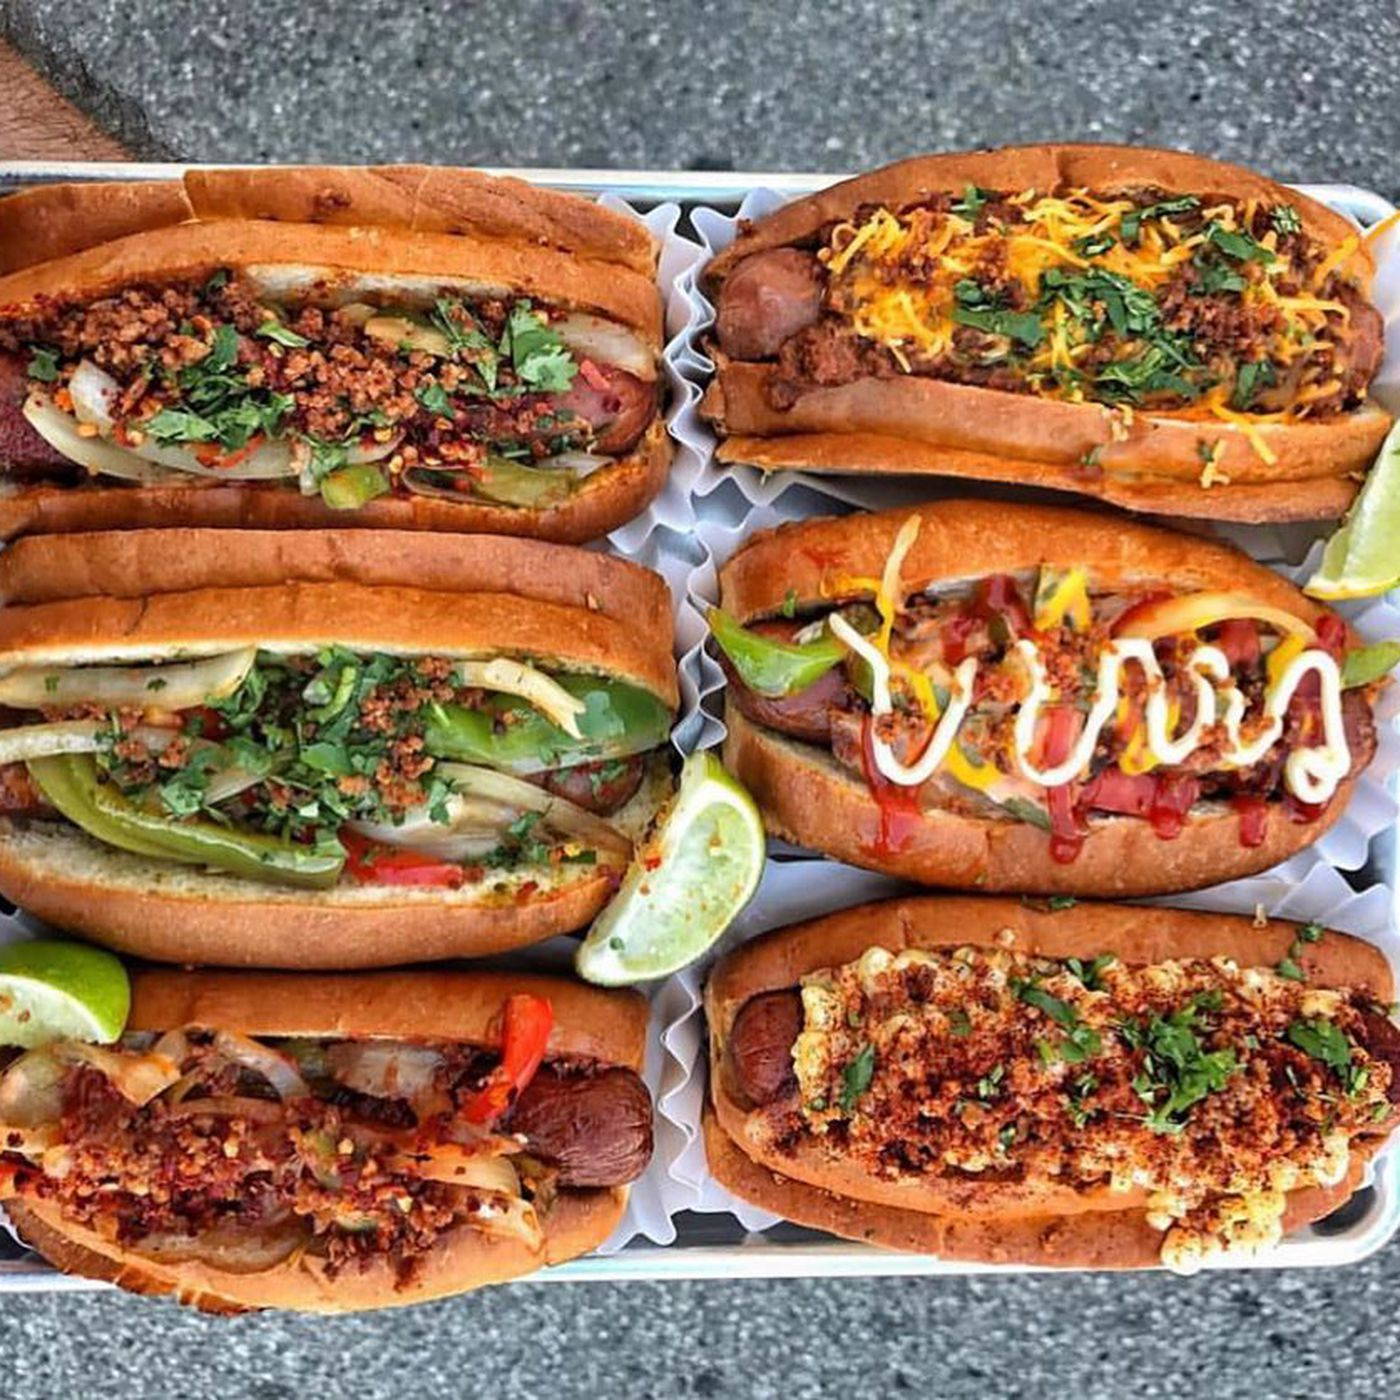 La S Best Hot Dogs From Chili Dogs To Bacon Wrapped Hot Dogs Eater La